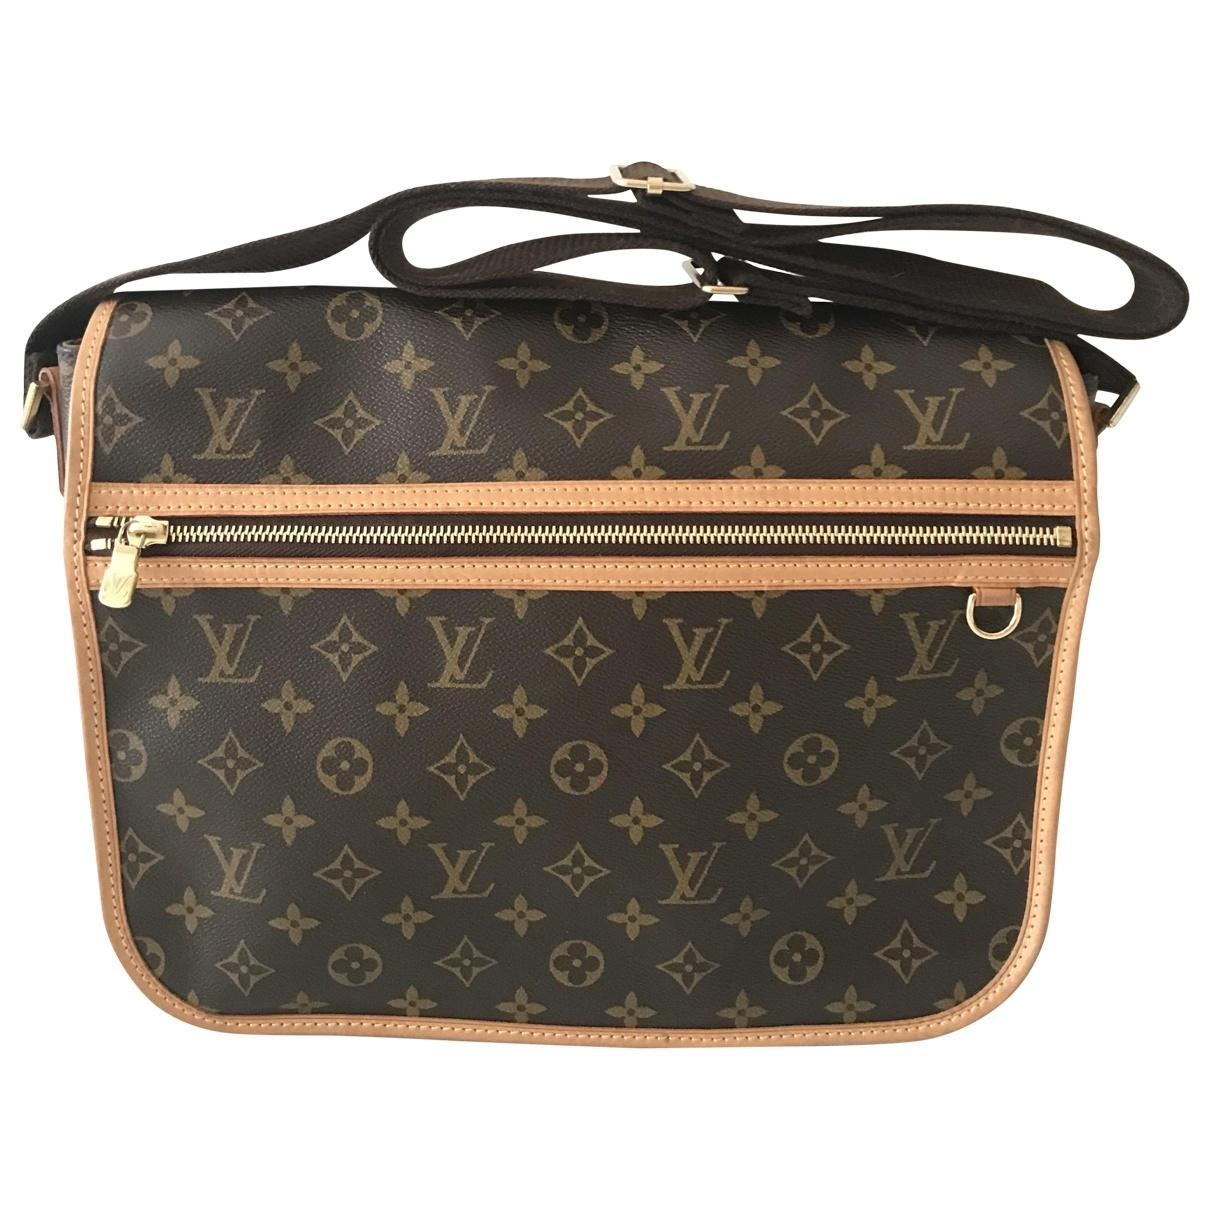 5c13f333b603 Louis Vuitton Bosphore Other Cloth Bag in Black for Men - Lyst